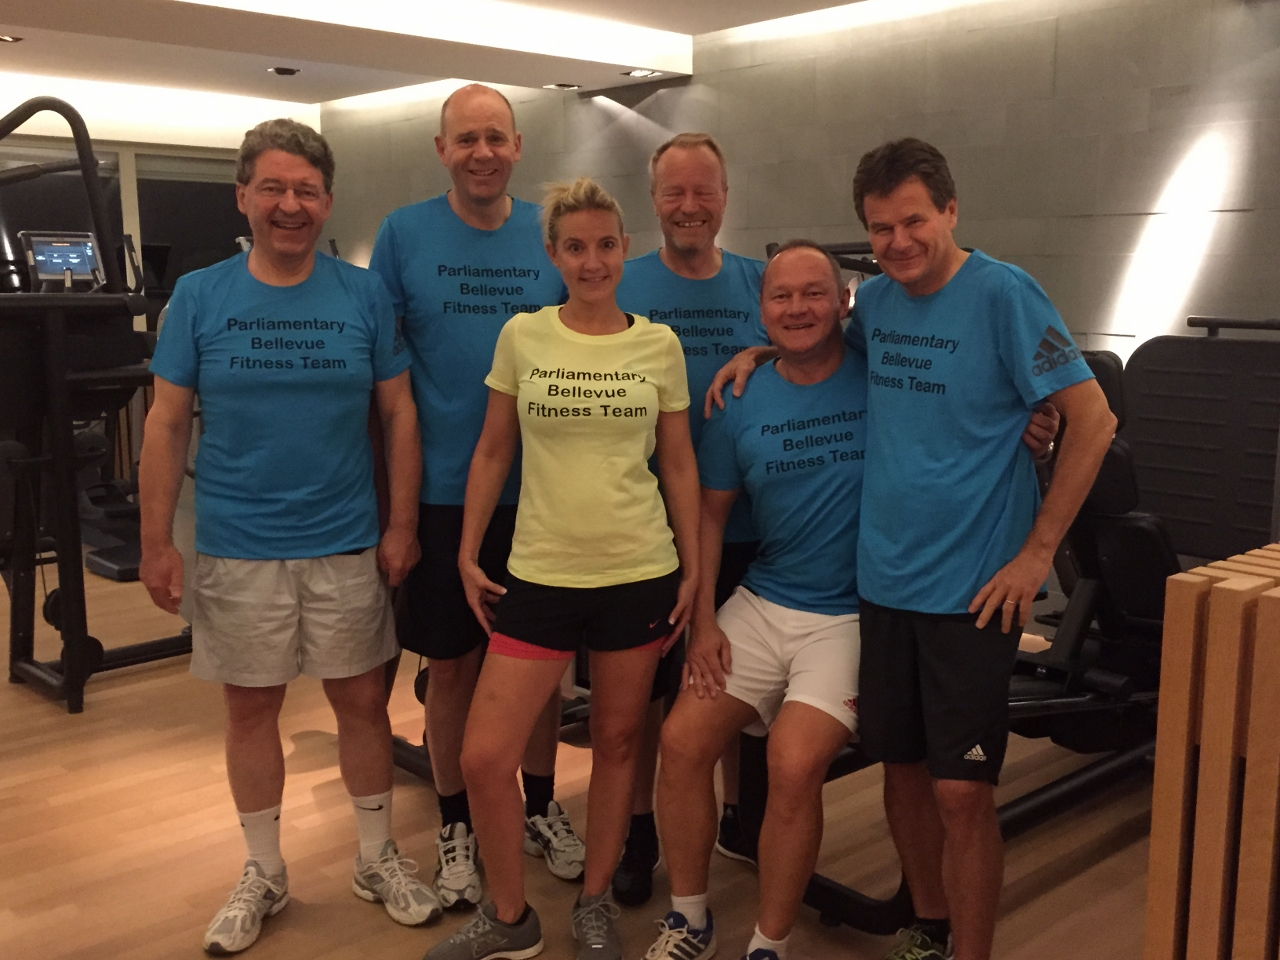 Parliamentary Bellevue Fitness Team